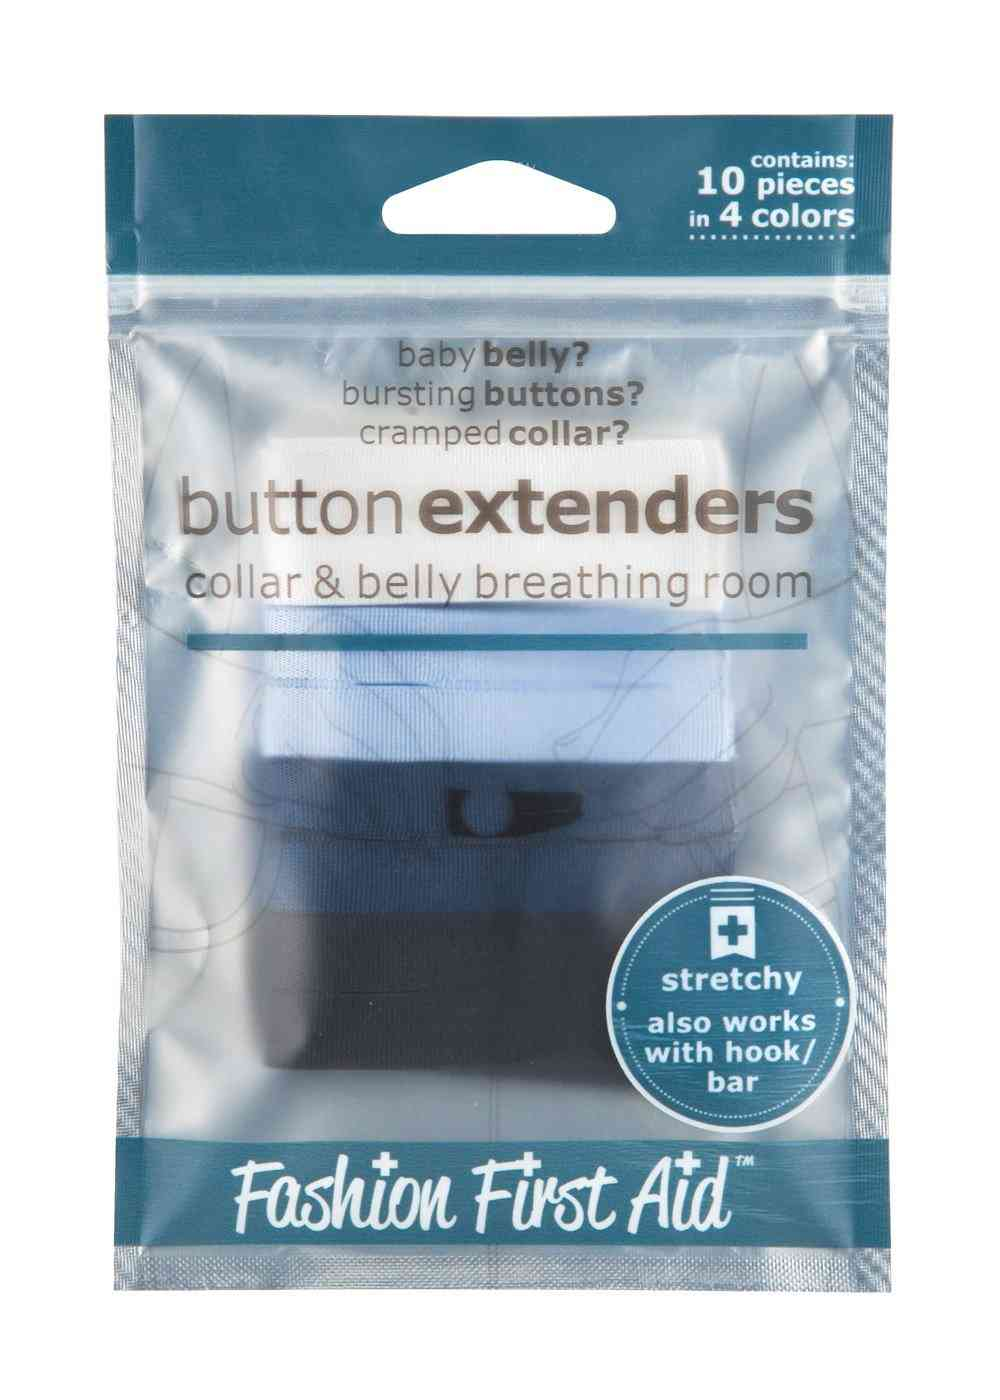 Button Extenders Collar & Belly Breathing Room